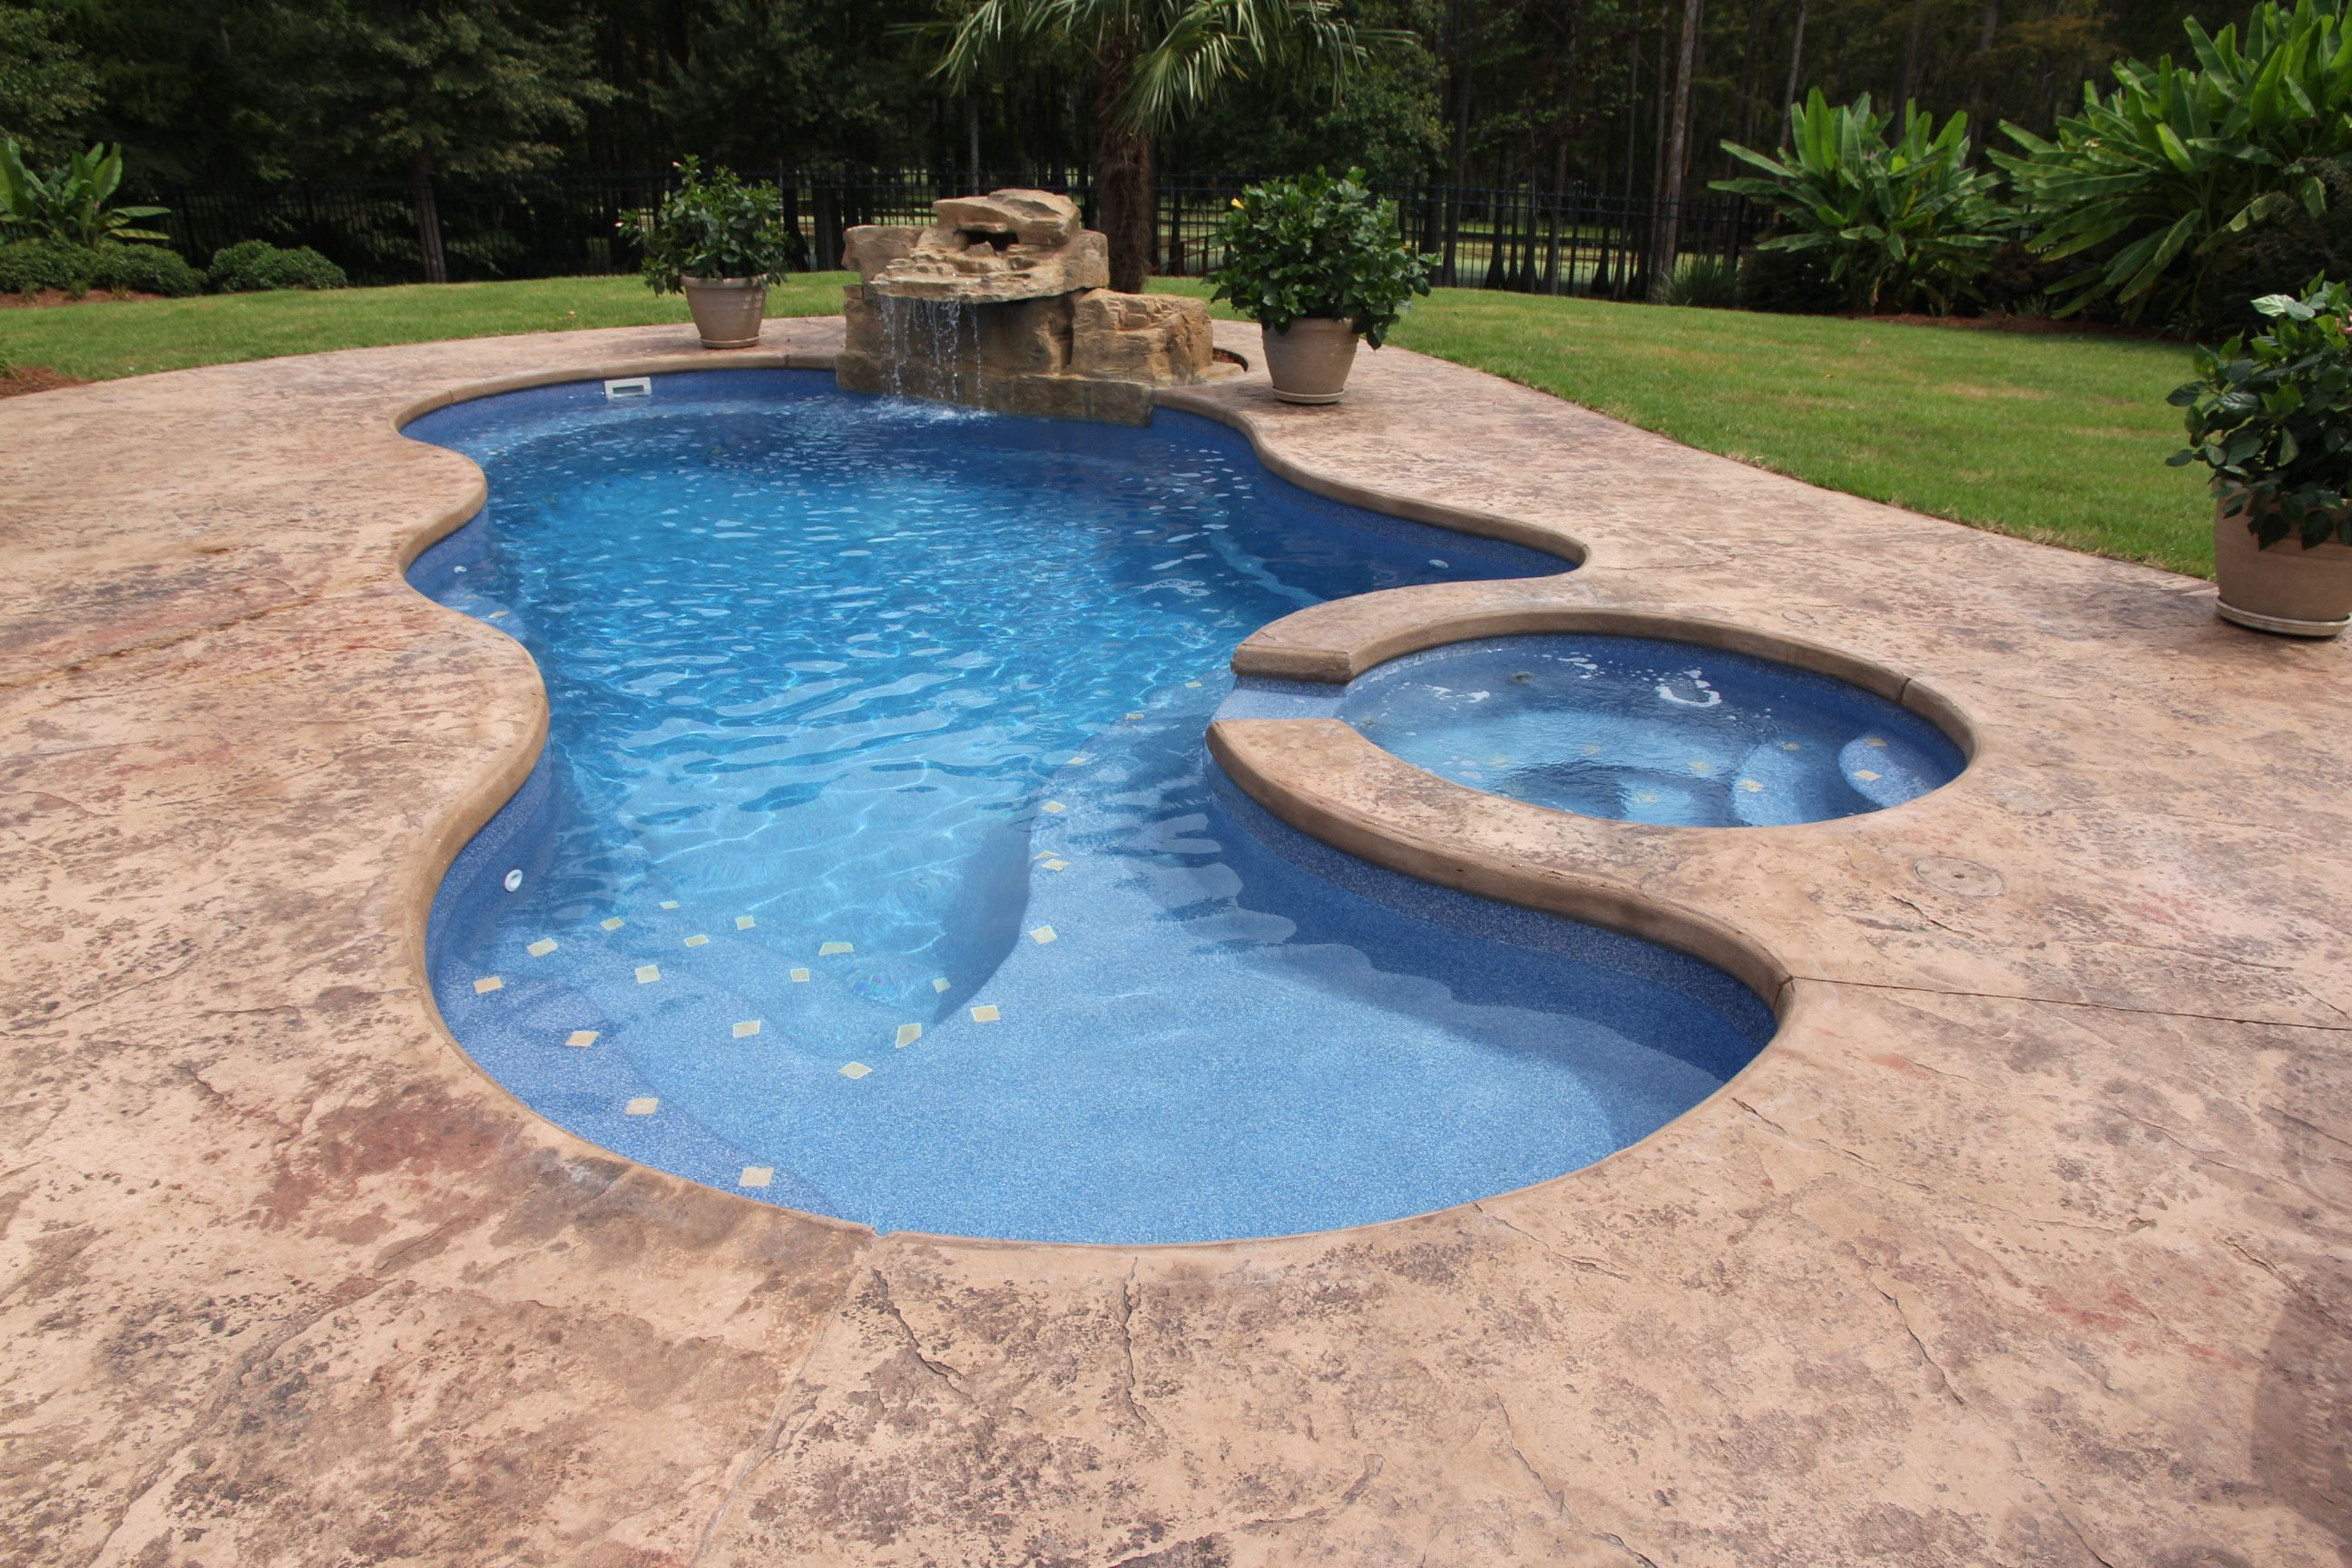 R Fibergl Swimming Pool By Dolphin Pools Of West Monroe Viking Trilogy Spa With Spillover Rico Rock Waterfall Pentair Ic40